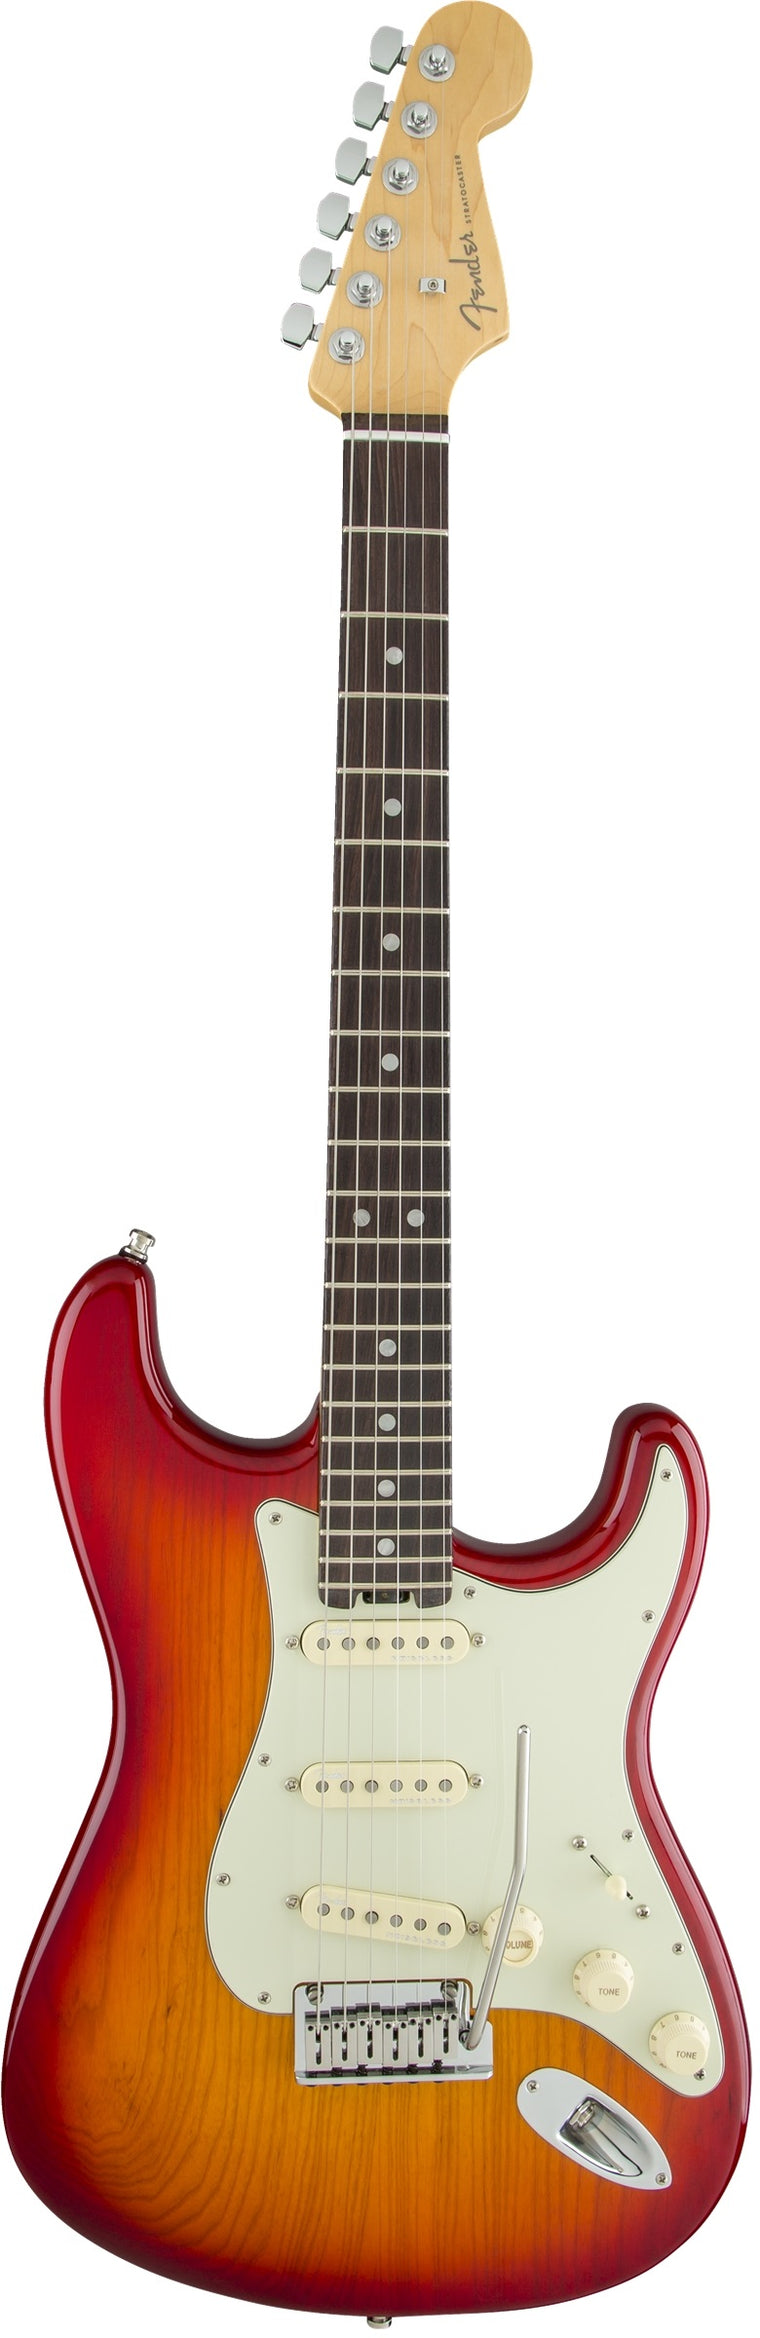 Fender American Elite Stratocaster, Rosewood Fingerboard, Aged Cherry Burst (Ash) Electric Guitar